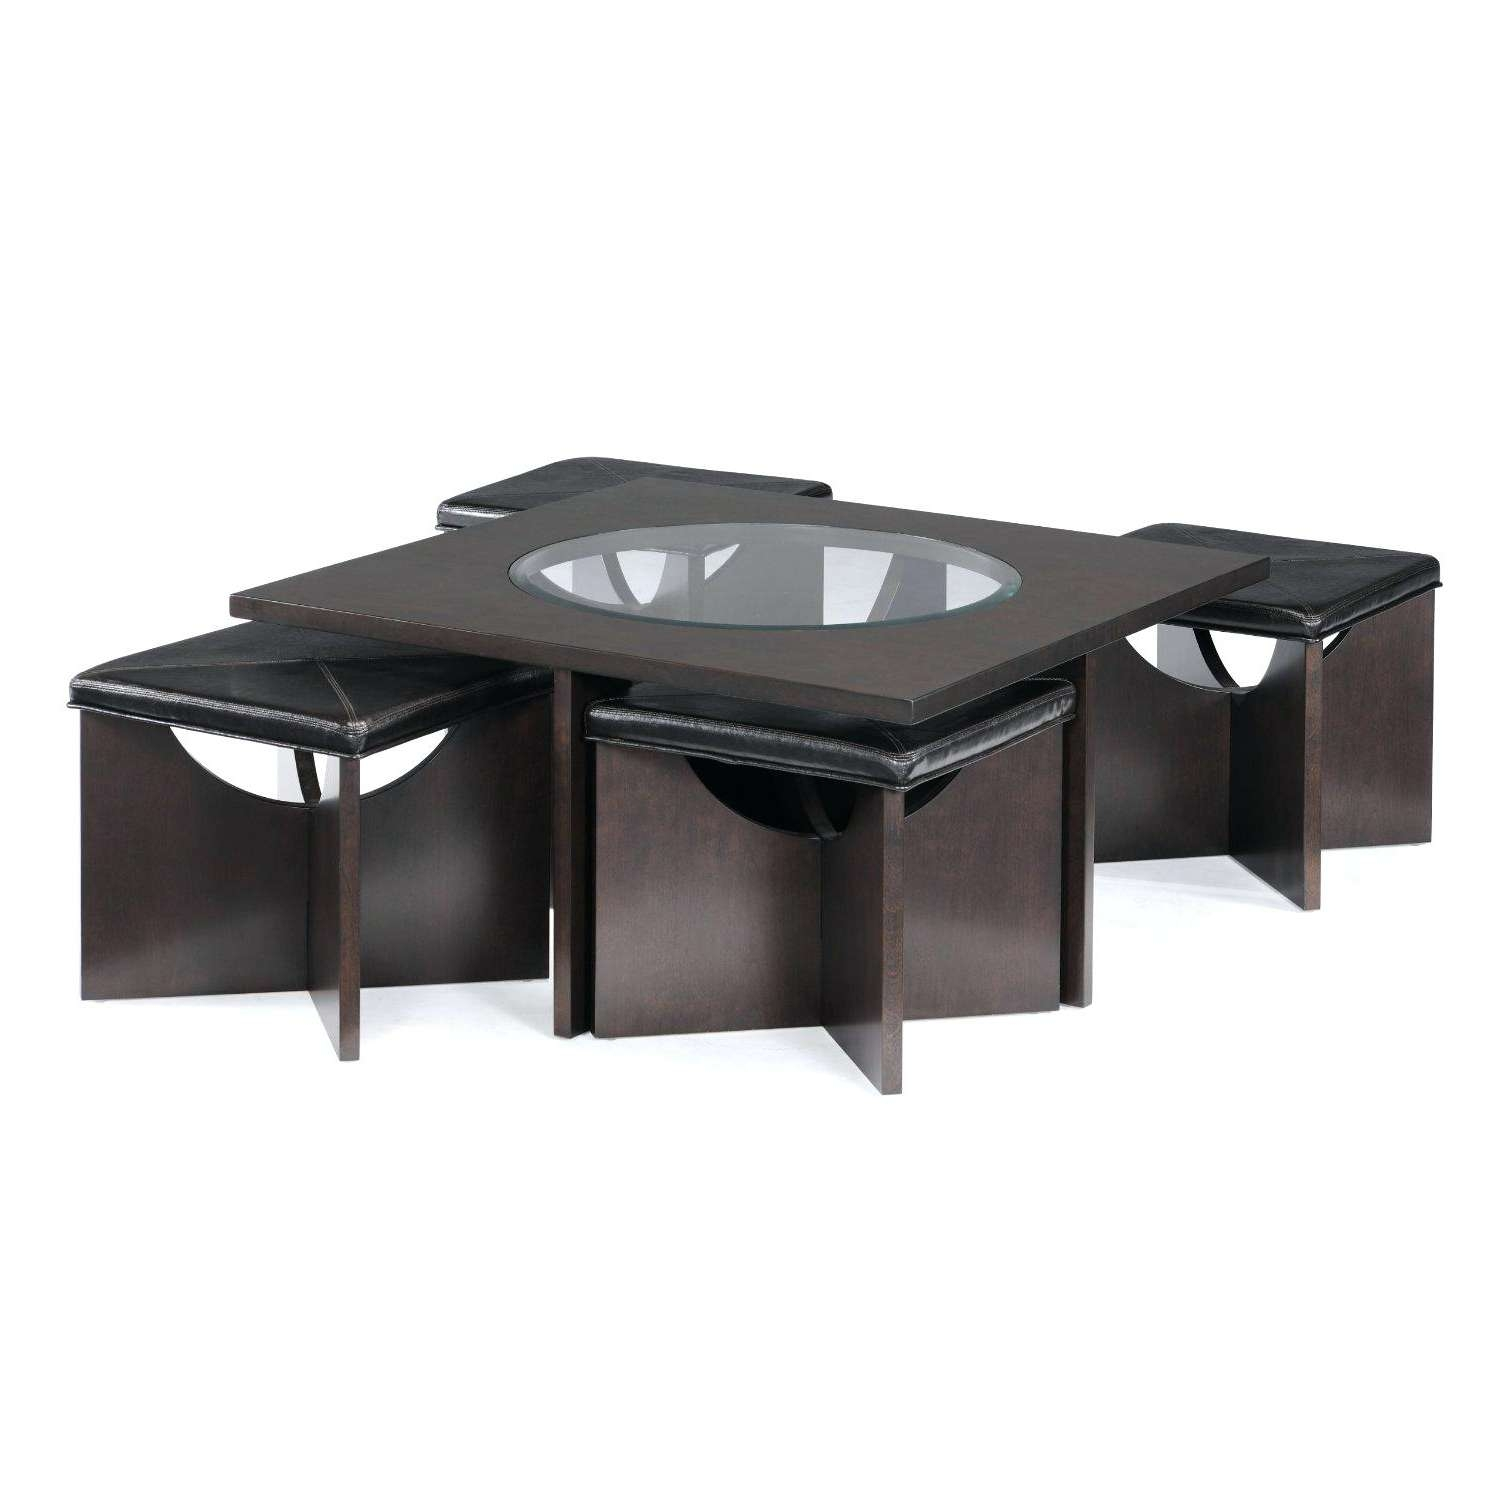 Preferred Coffee Tables With Nesting Stools Pertaining To Coffee Tables : Coffee Table With Stools Underneath Asian Oval Six (View 17 of 20)